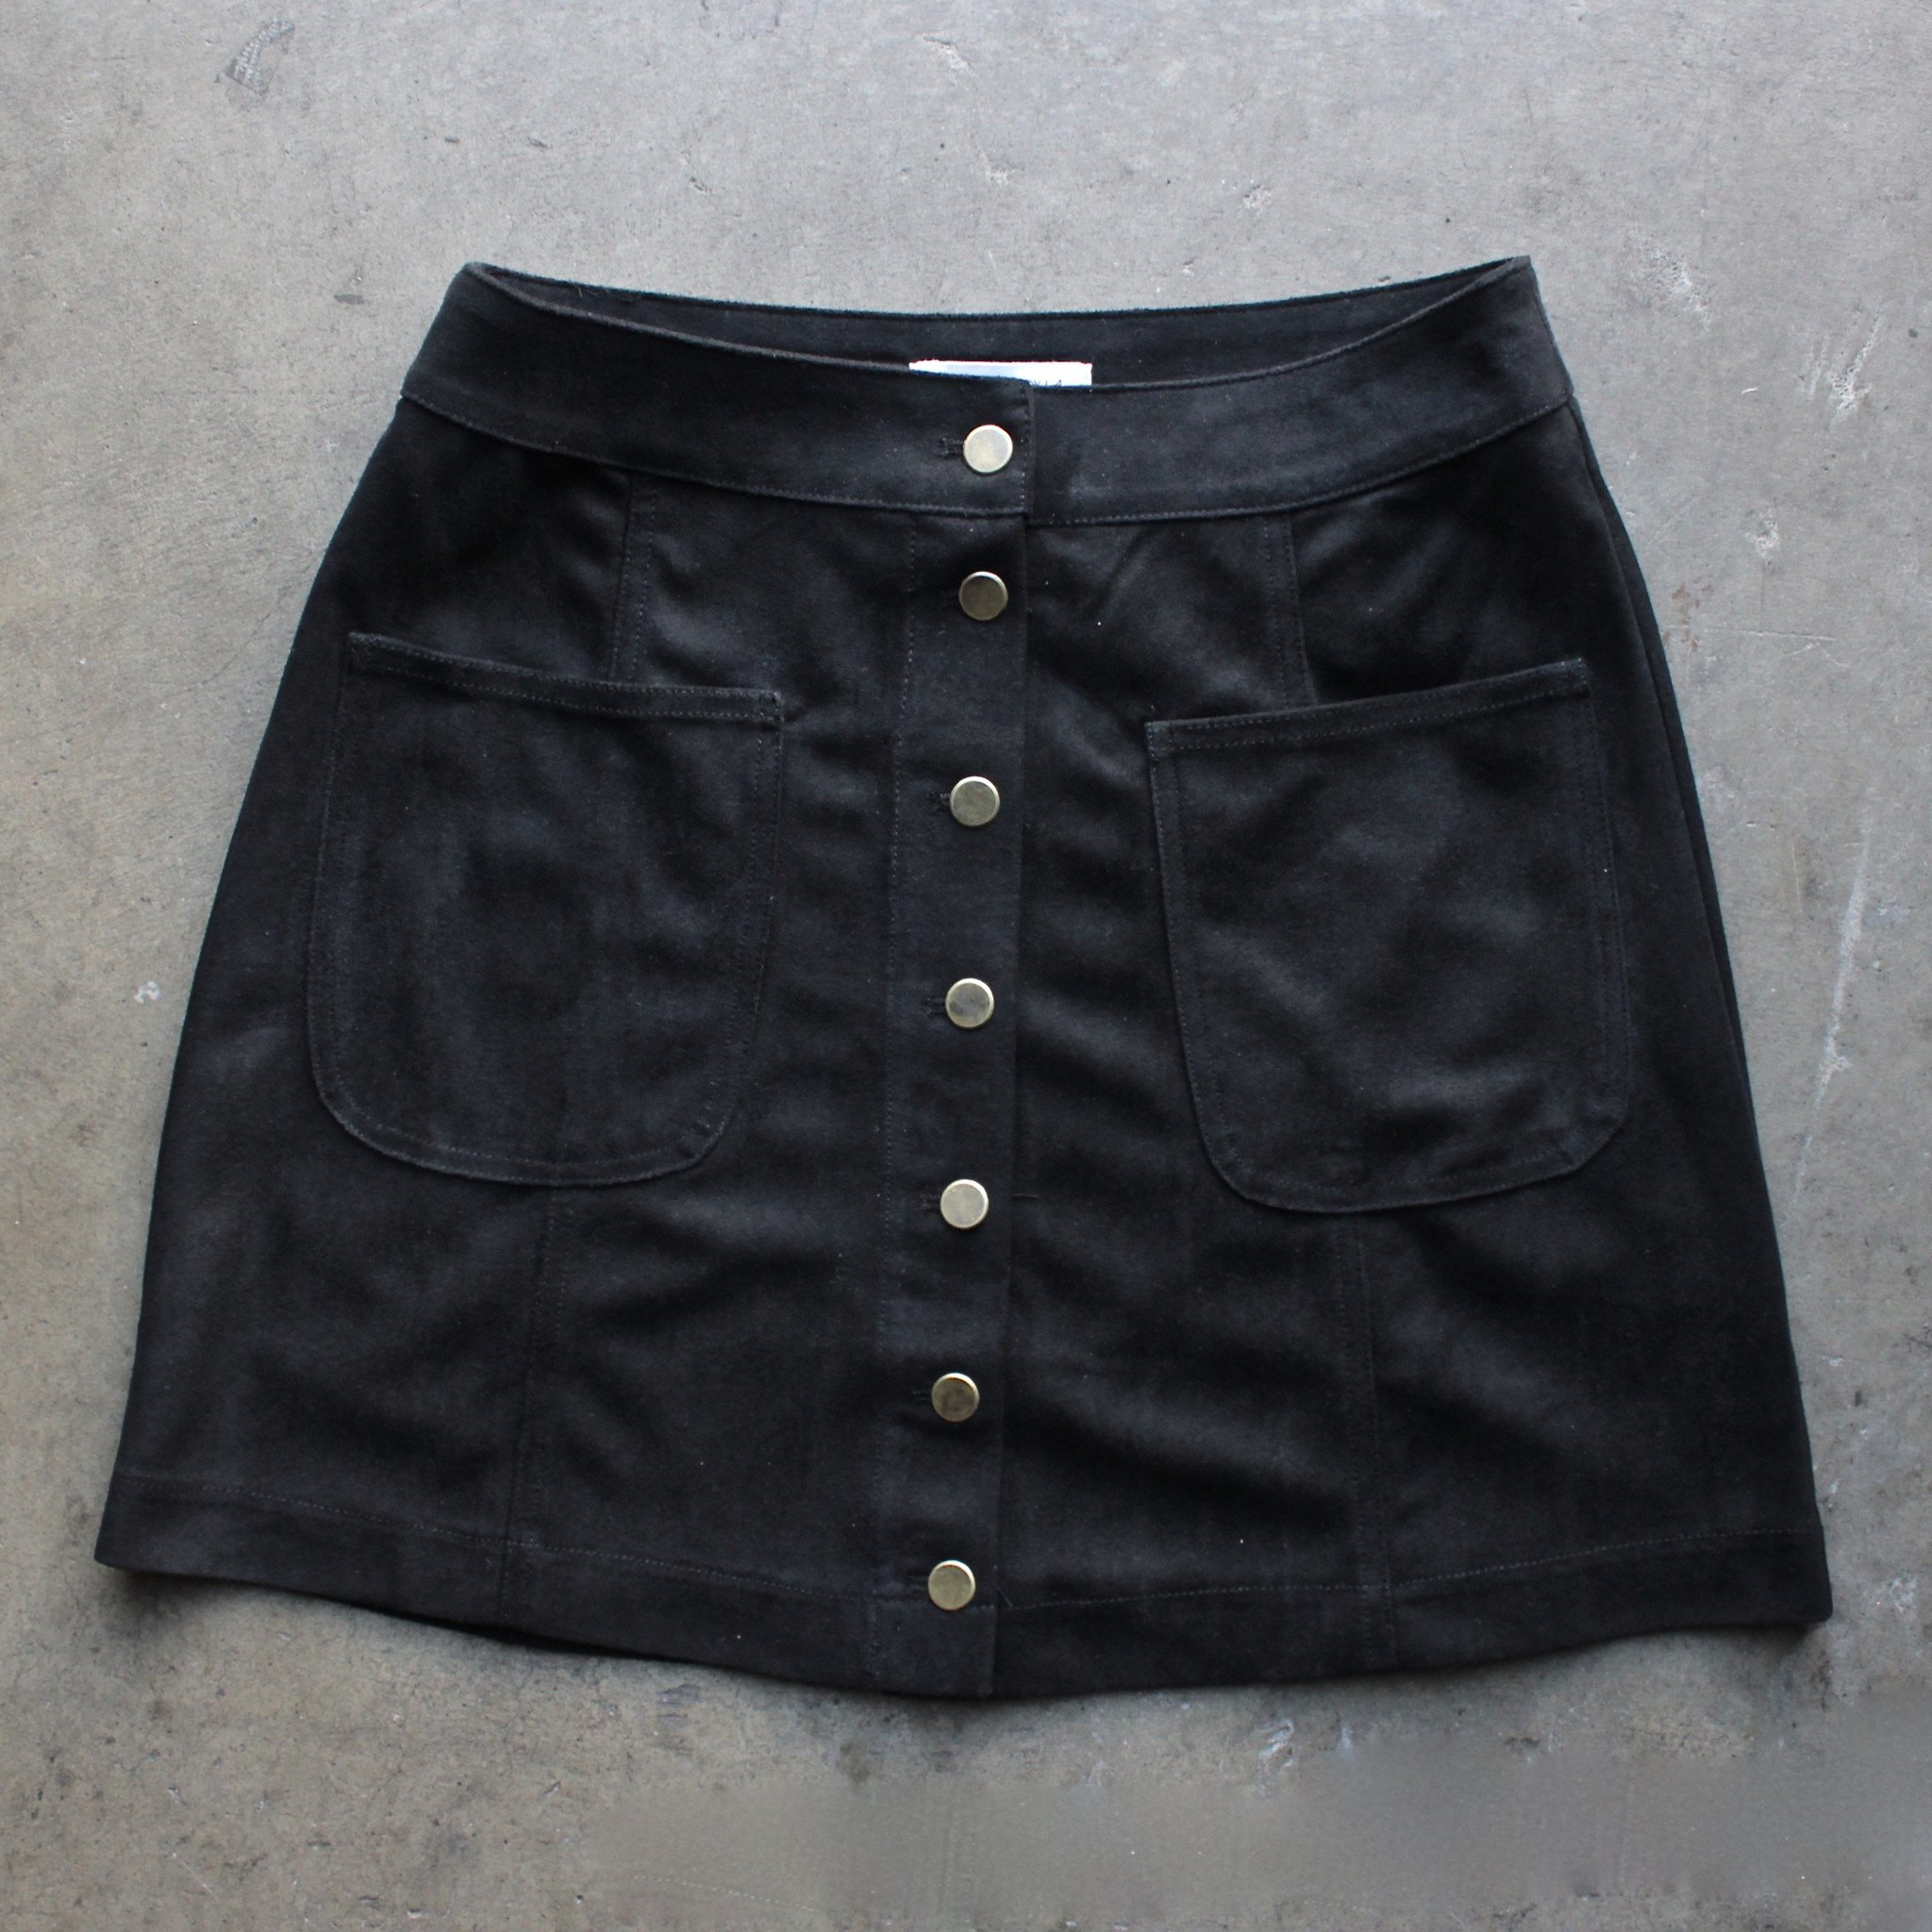 Image of High Standards Suede Skirt in More Colors